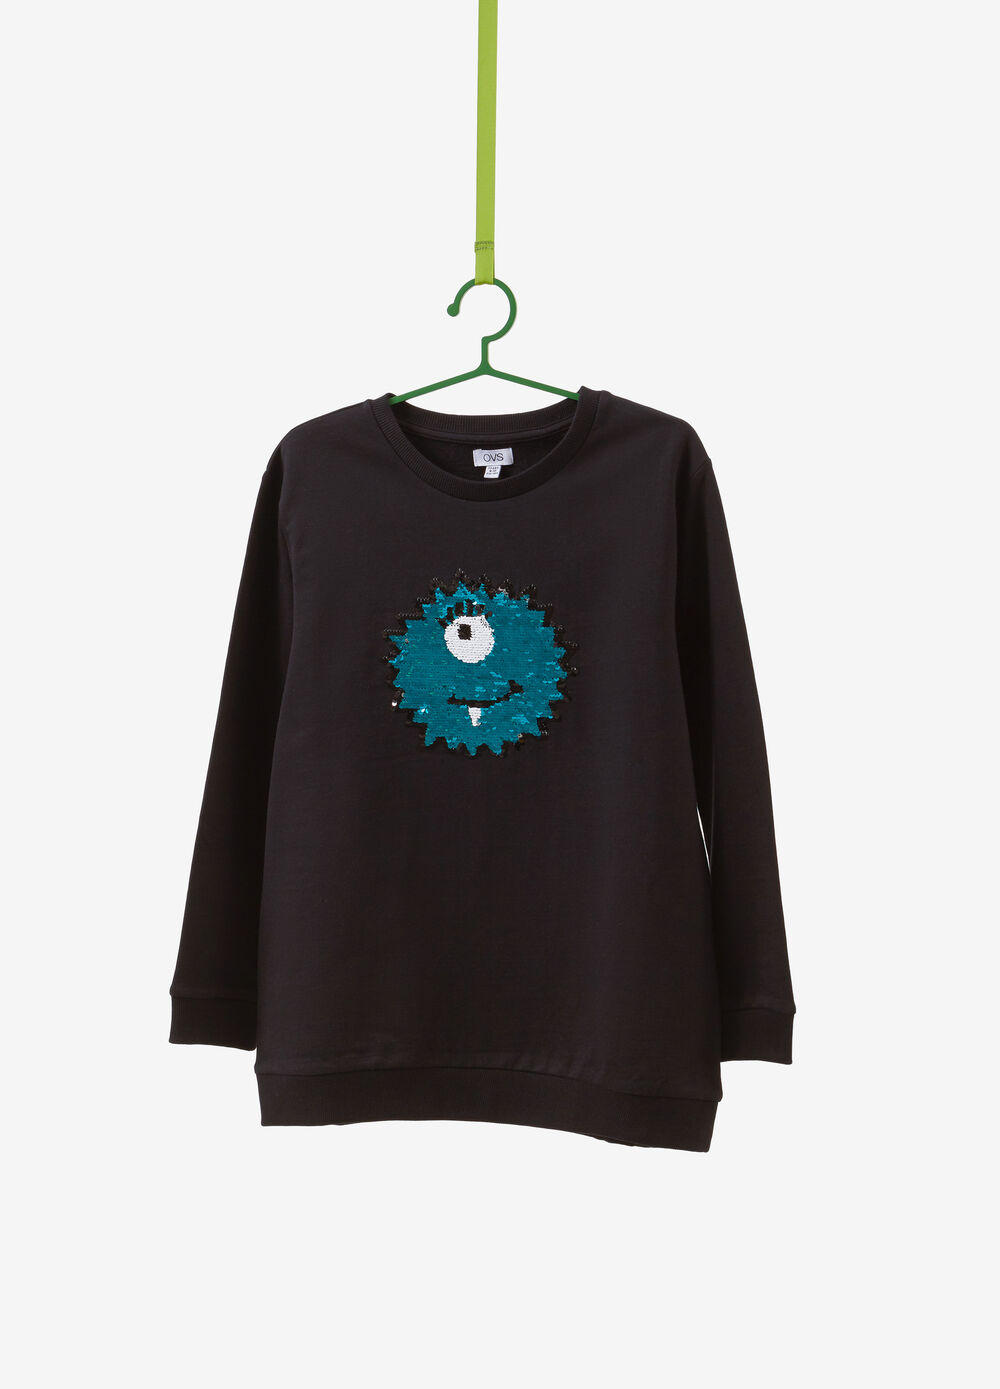 100% cotton sweatshirt with sequinned sun